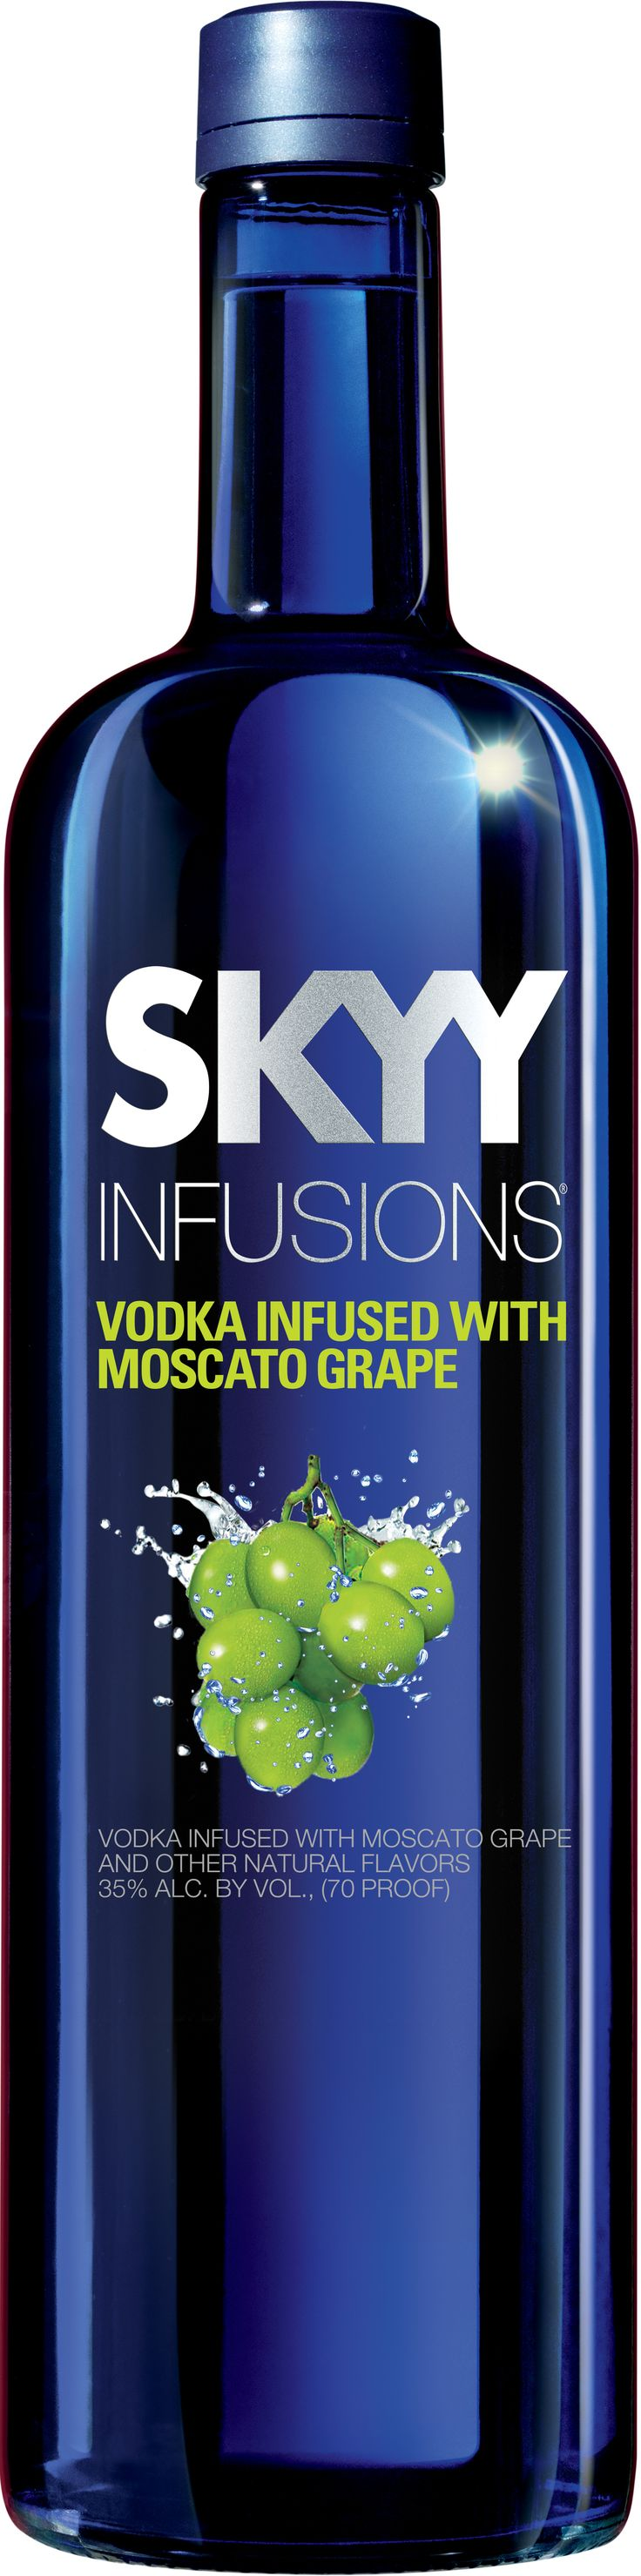 So this isn't exactly a moscato but it's infused with moscato grapes, which we can dig. Skyy is bringing their vodka to the wine table with their latest infusion of moscato grape. Taste the grape flavor as you sip it with your favorite mixer.  -Cosmopolitan.com